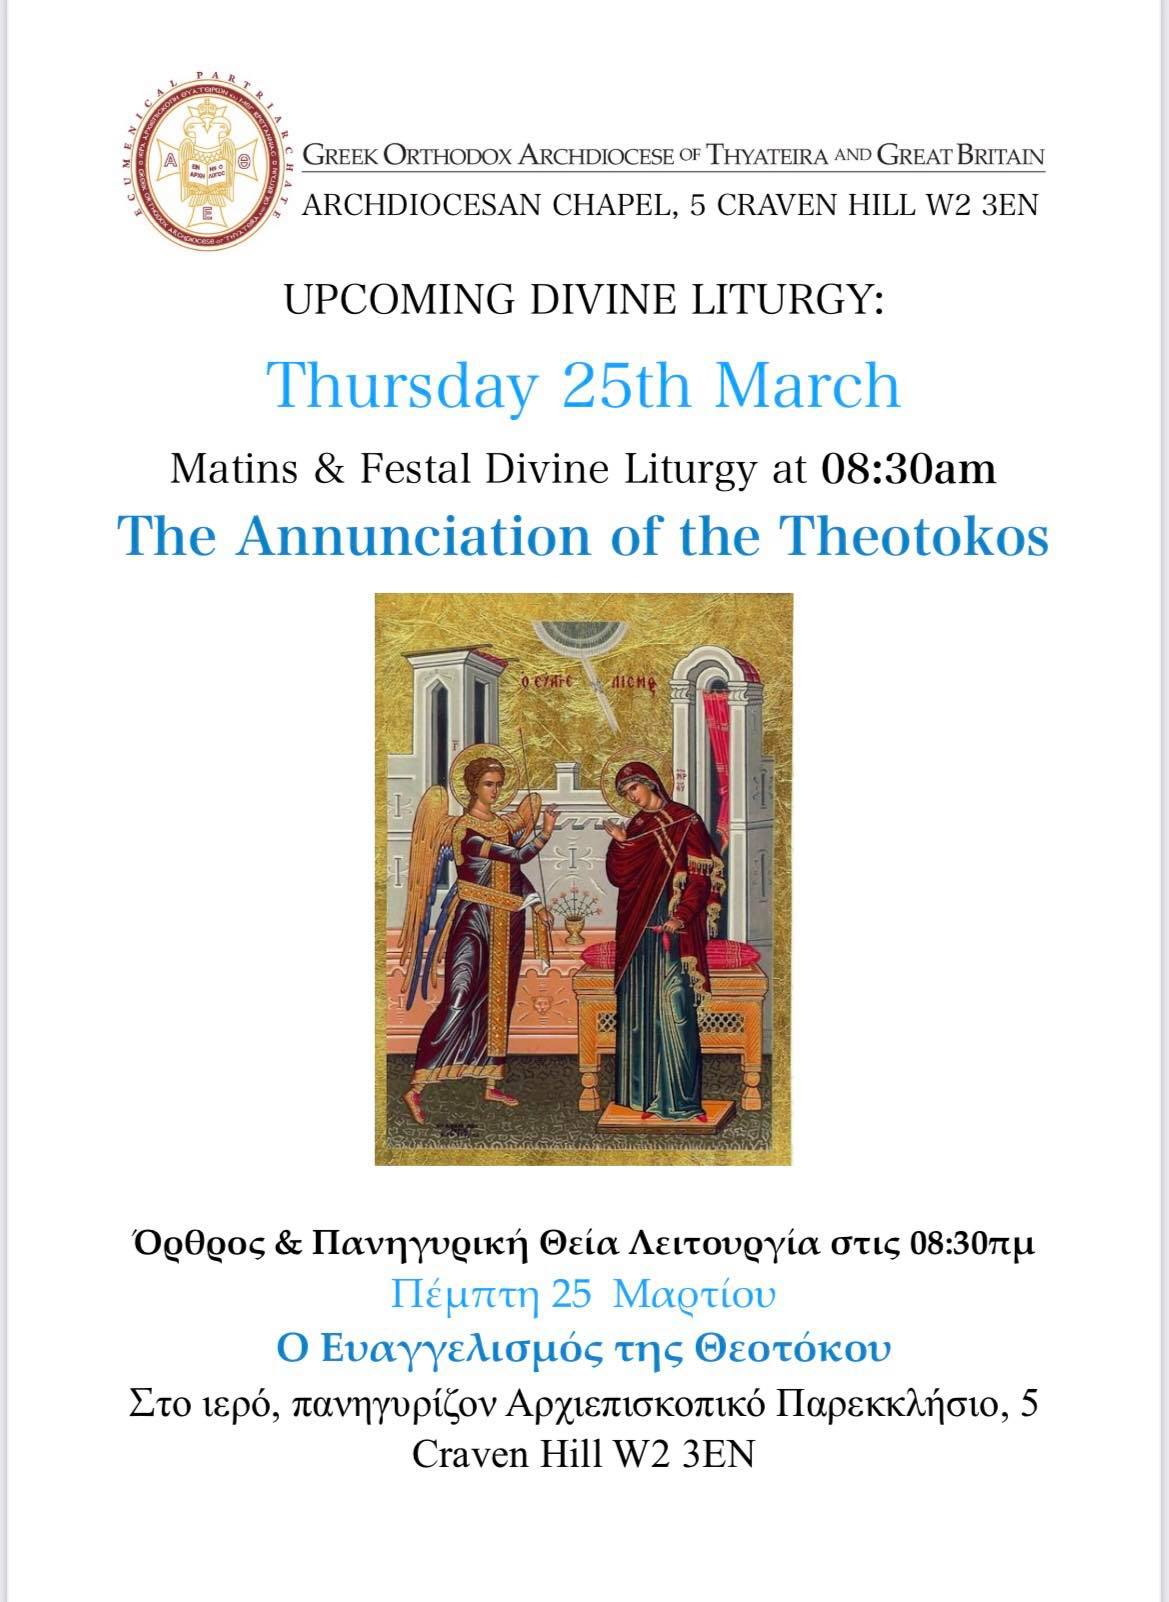 The Feast of the Annunciation at the Archdiocesan Chapel